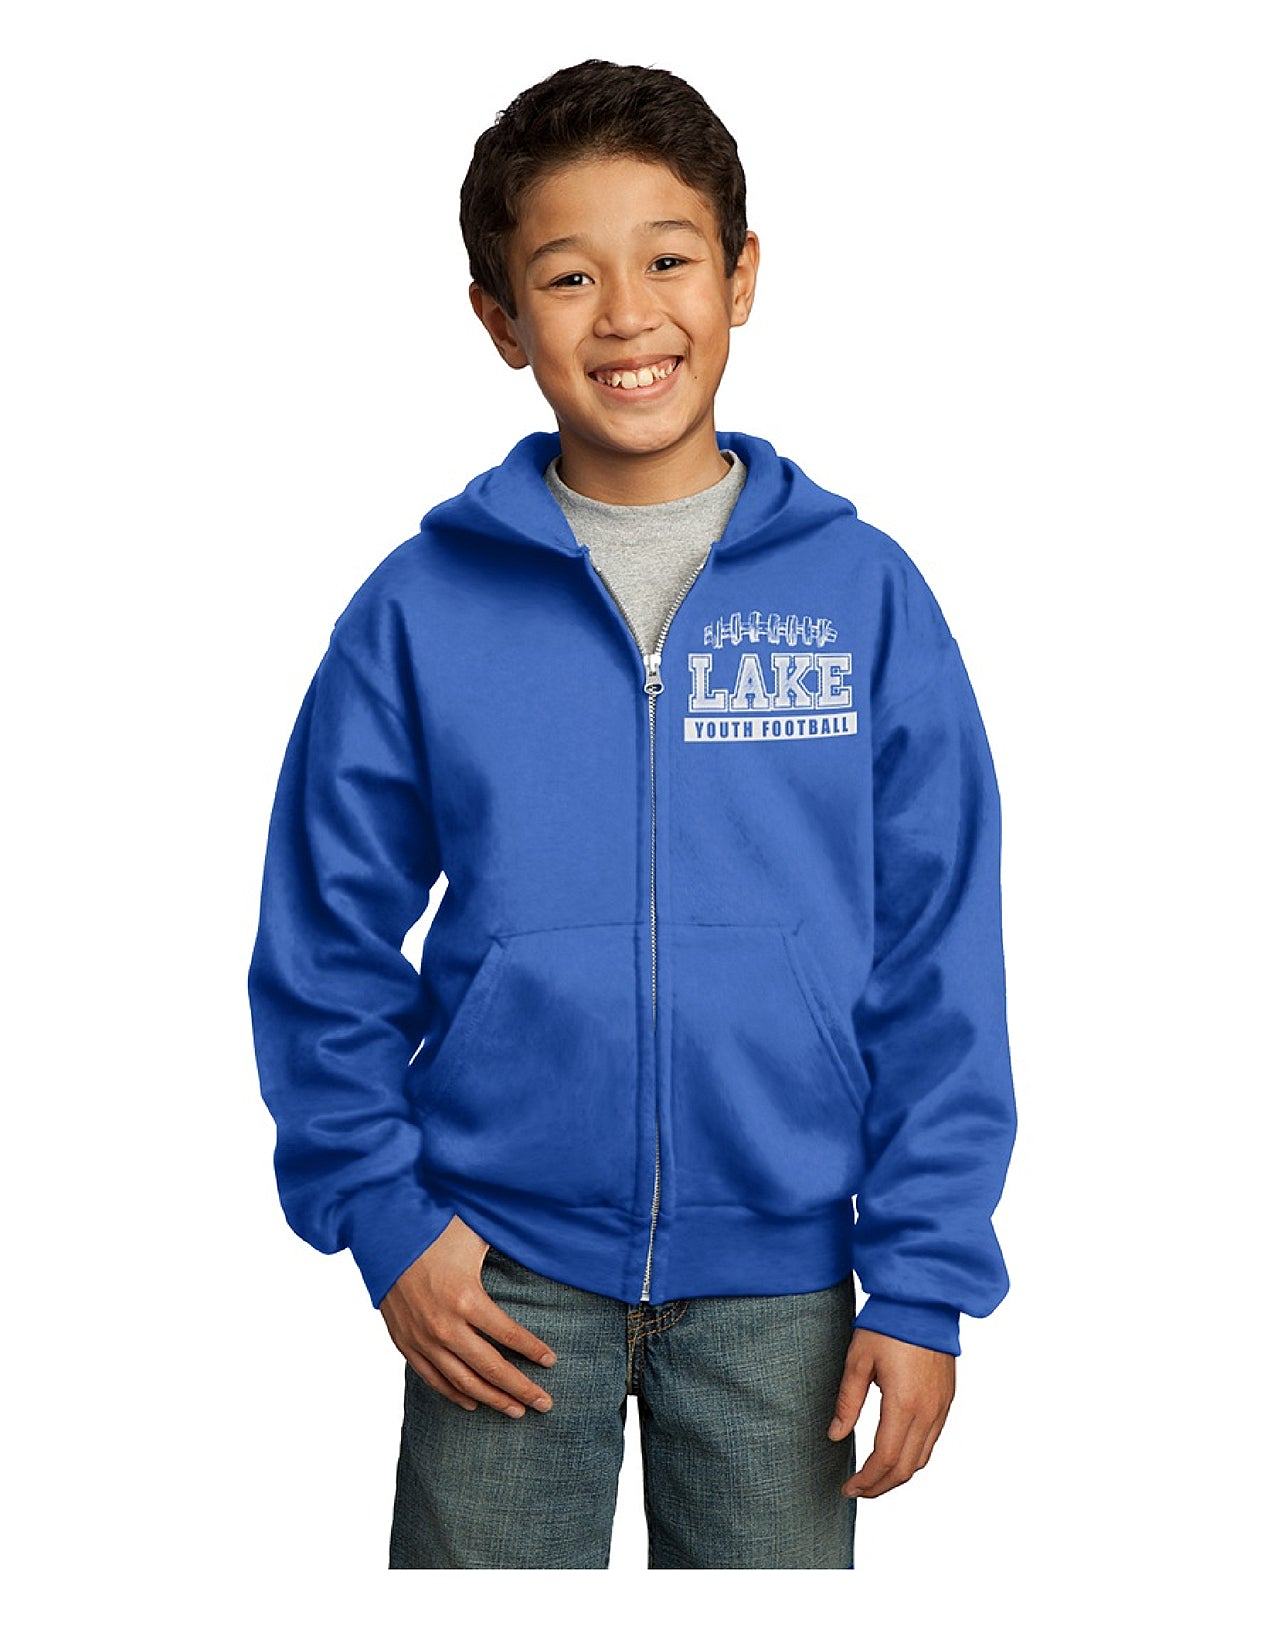 Youth Zip-Up Sweatshirt